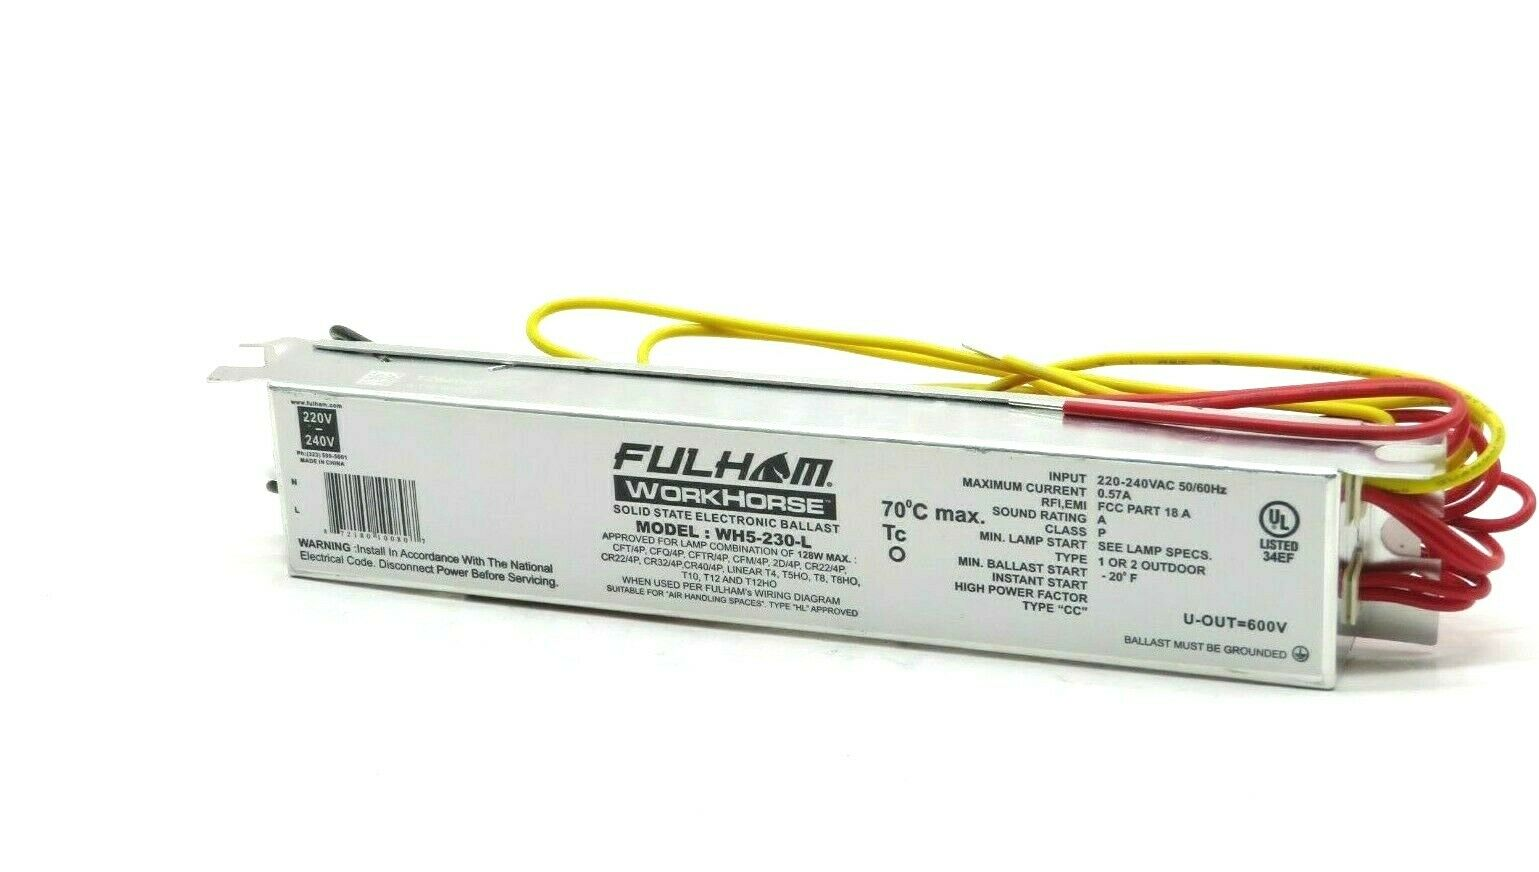 hight resolution of fulham solid state electronic ballast wh5 230 l 230v 50 60hz 1 or 2 outdoor for sale online ebay